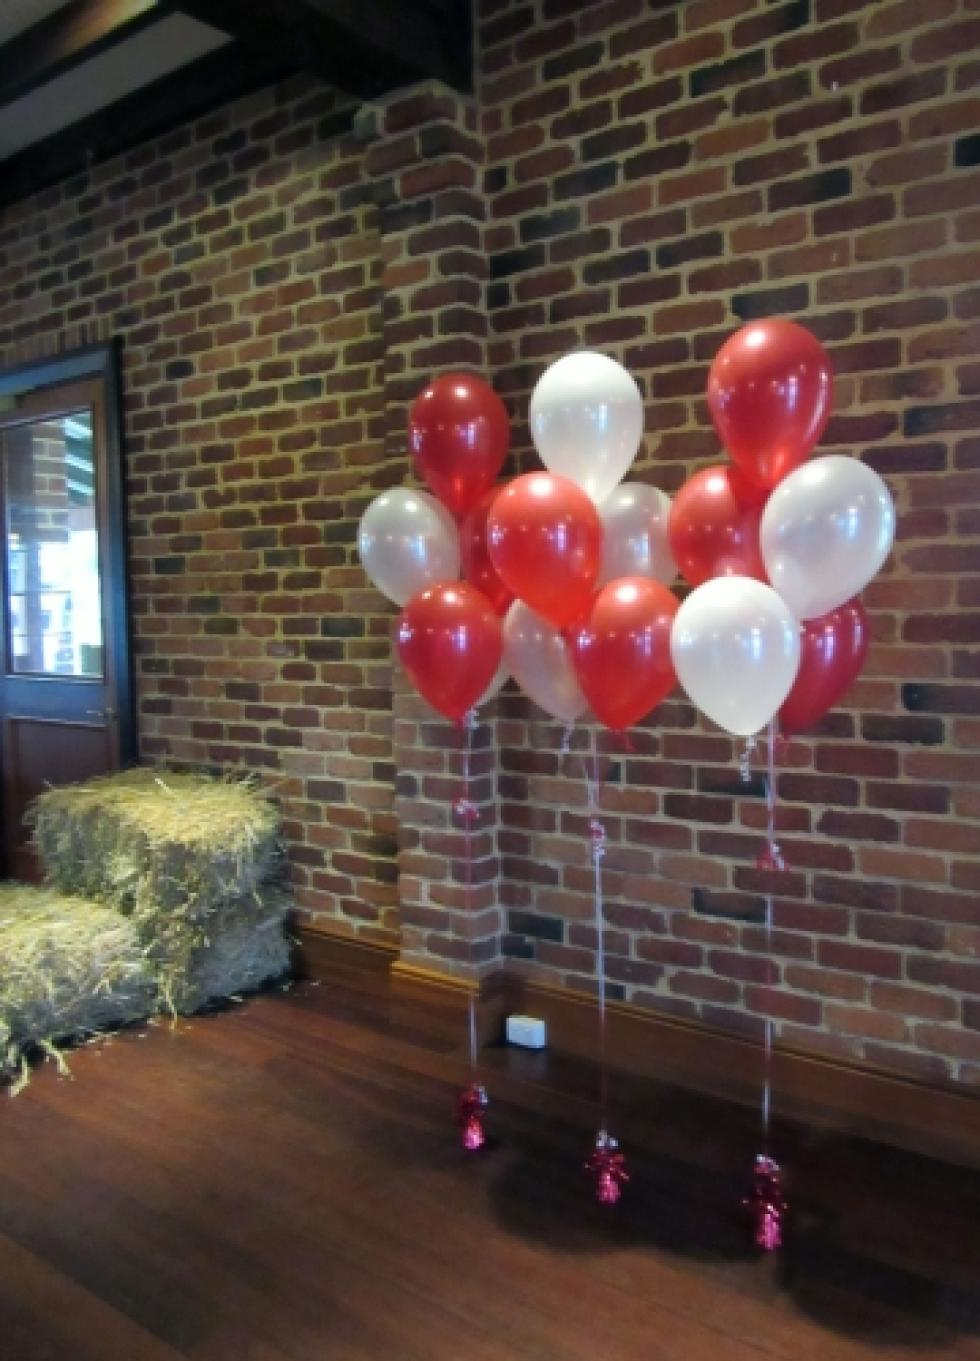 Red & White Balloon Floor Arrangements Bakers House www.corporaterewards.com.au